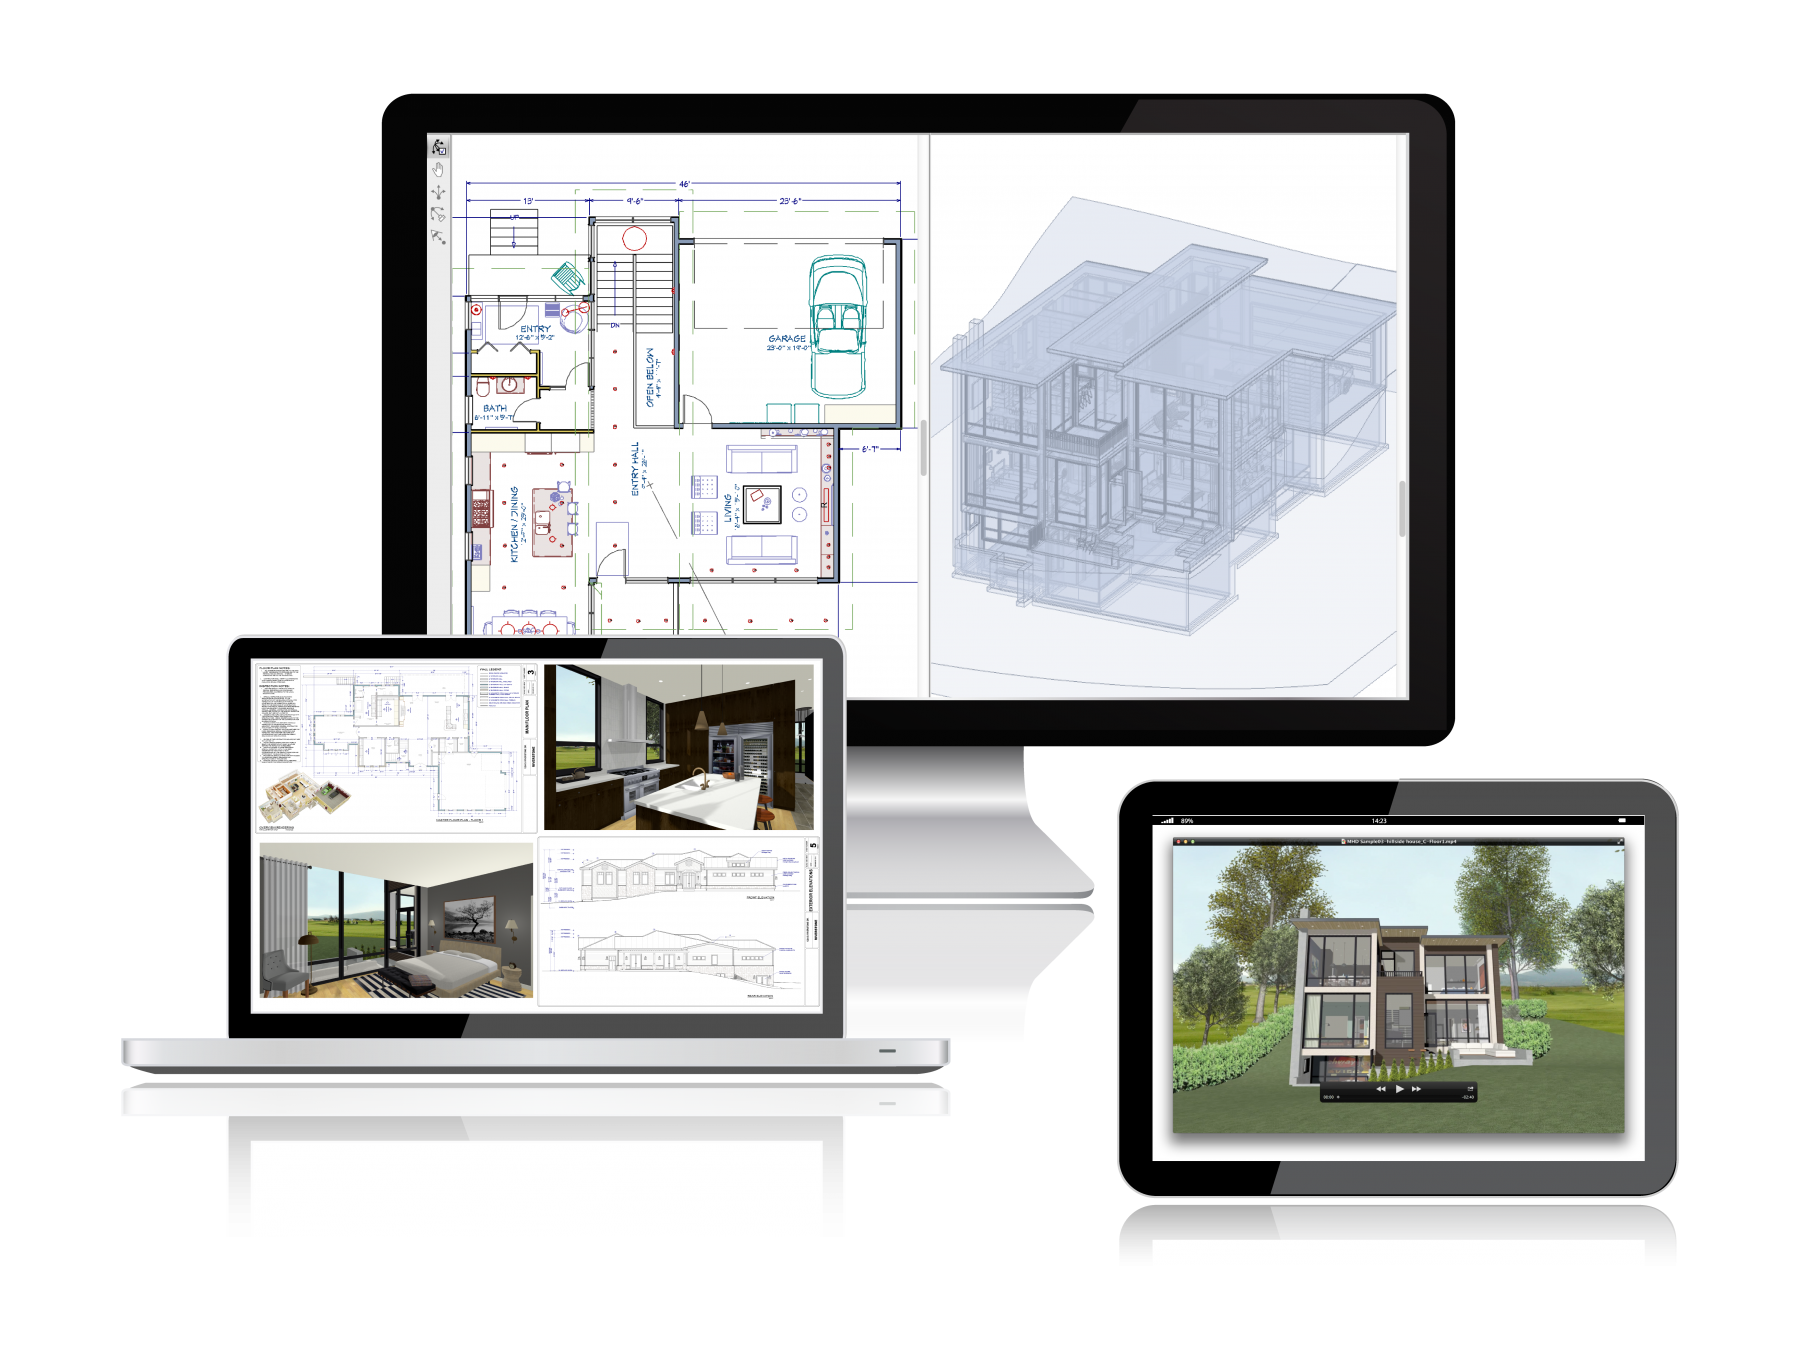 Michael Hanna Design - 3D Home Design and Architectural Modeling